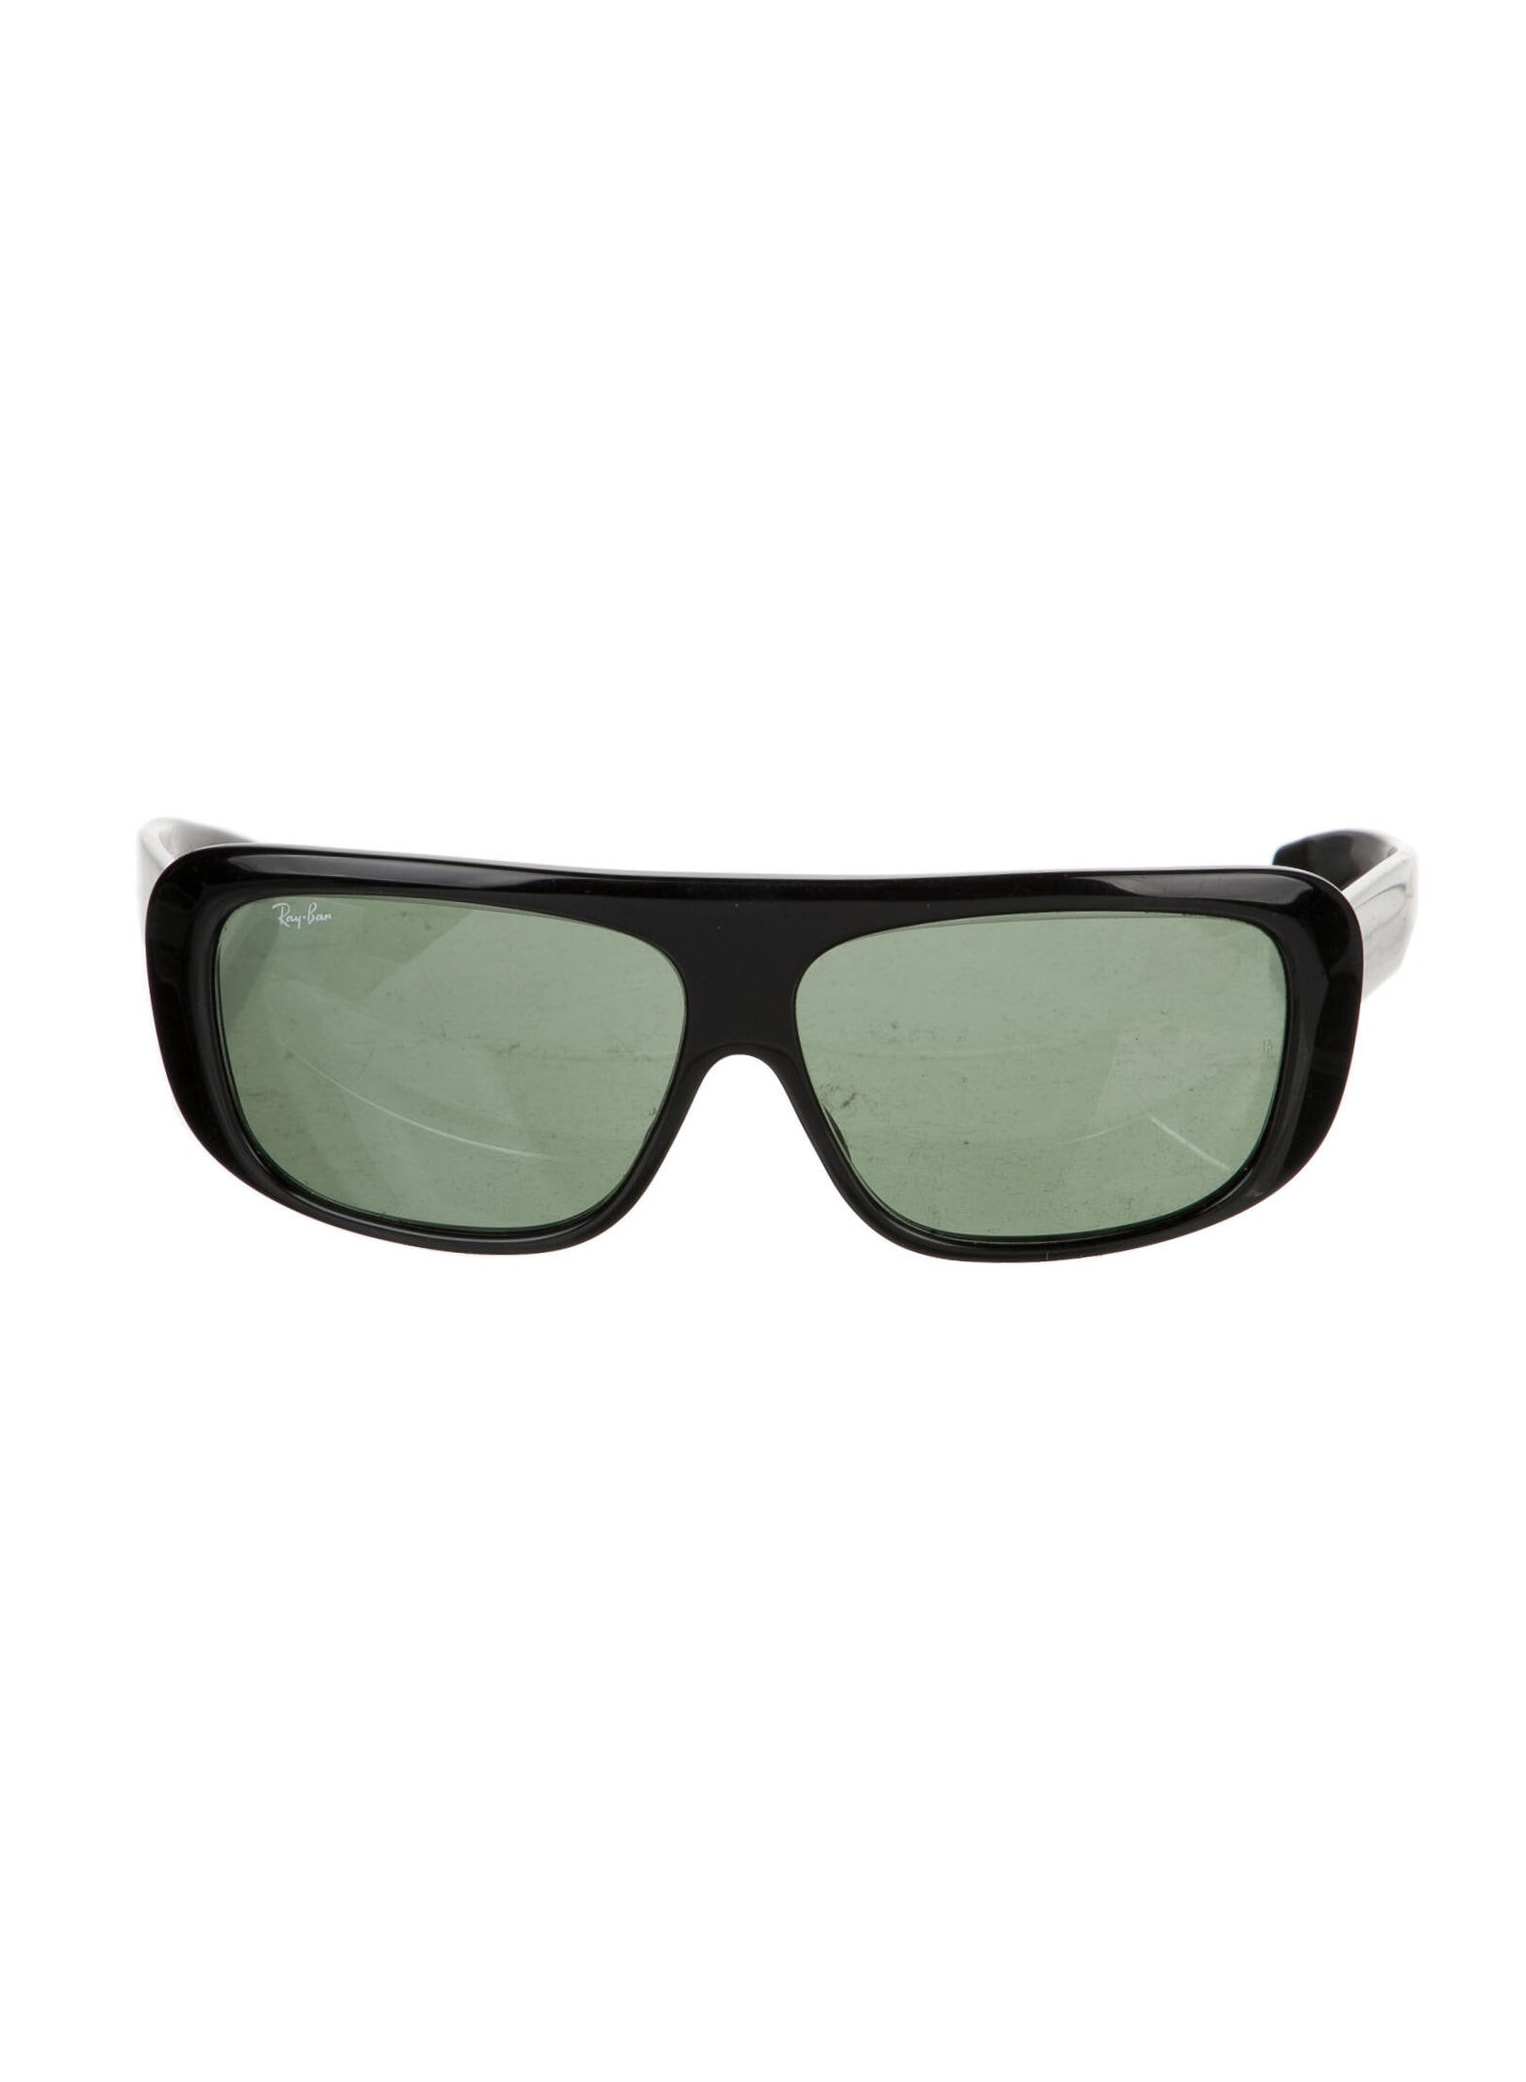 RAY-BAN Square Tinted Sunglasses